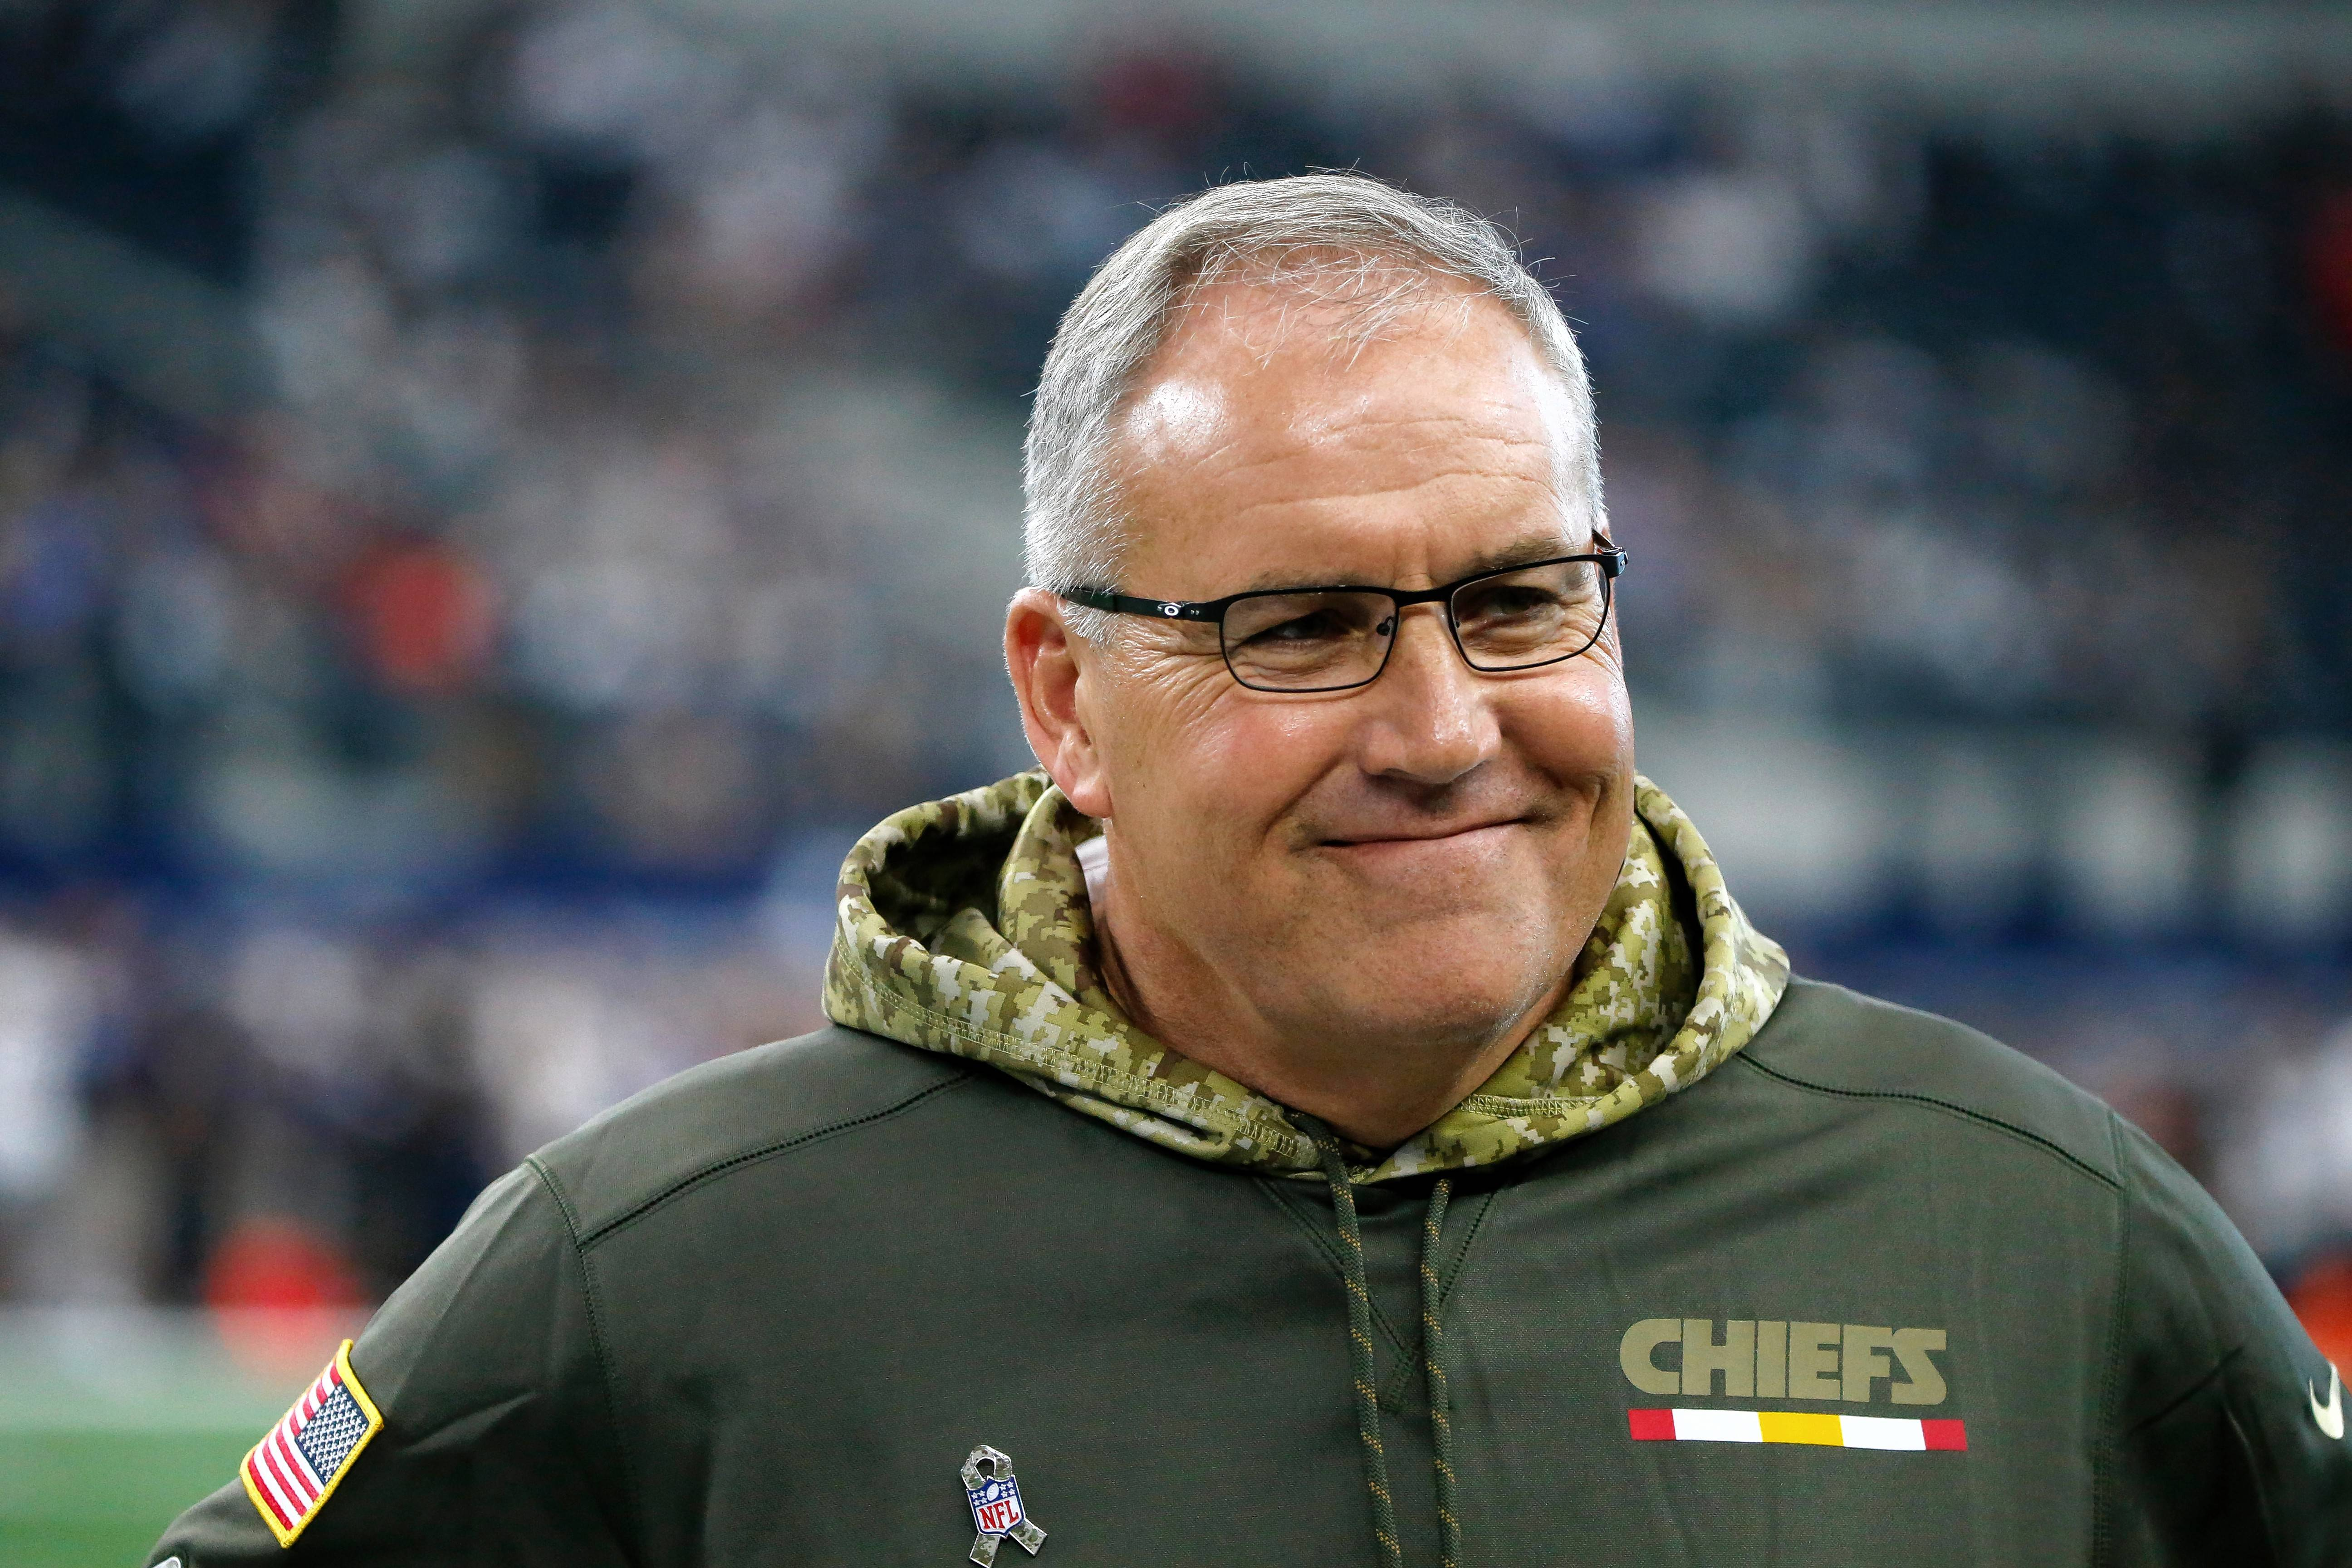 Kansas City Chiefs Special Teams Coordinator Dave Toub is rumored to be a top candidate for the Indianapolis Colts head coaching job.